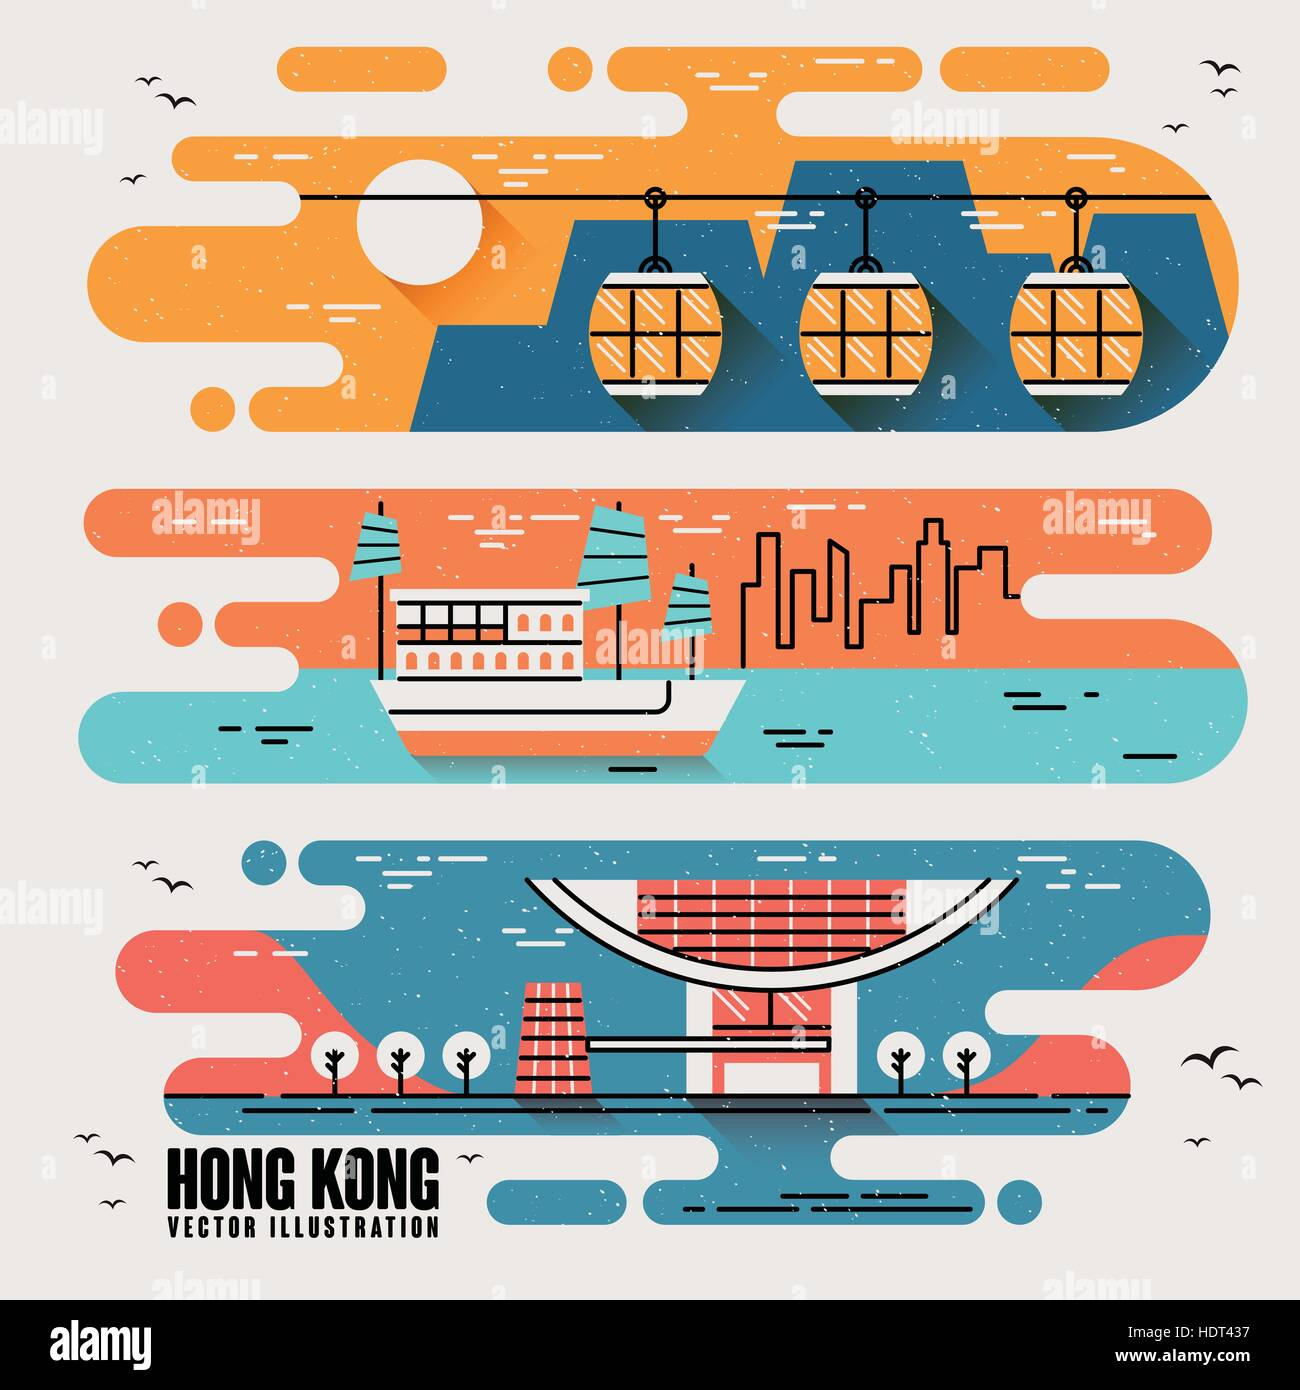 Hong Kong famous attractions in lovely flat design style - Stock Vector